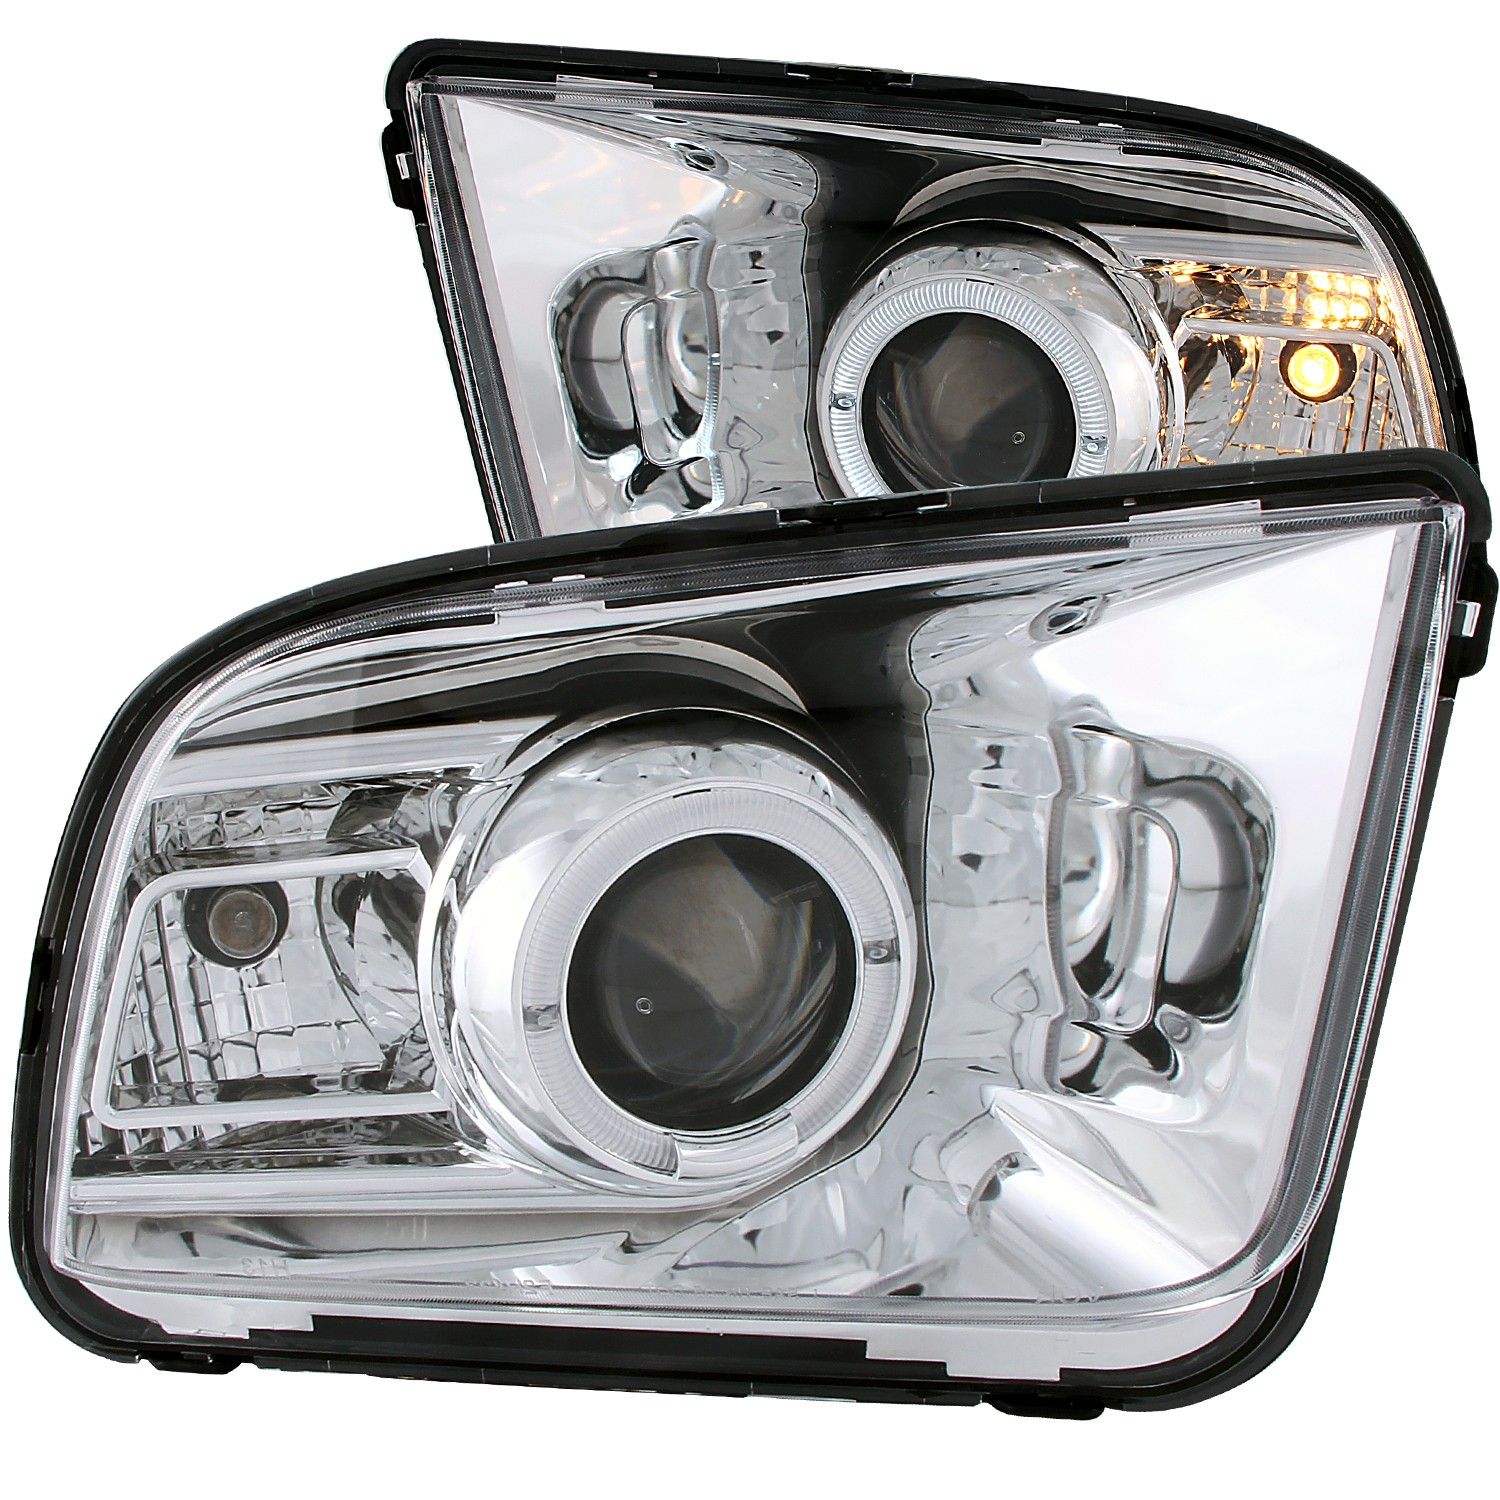 2005-2009 Ford Mustang ANZO Projector Headlights w/Chrome Background & Halo (2010 Style)